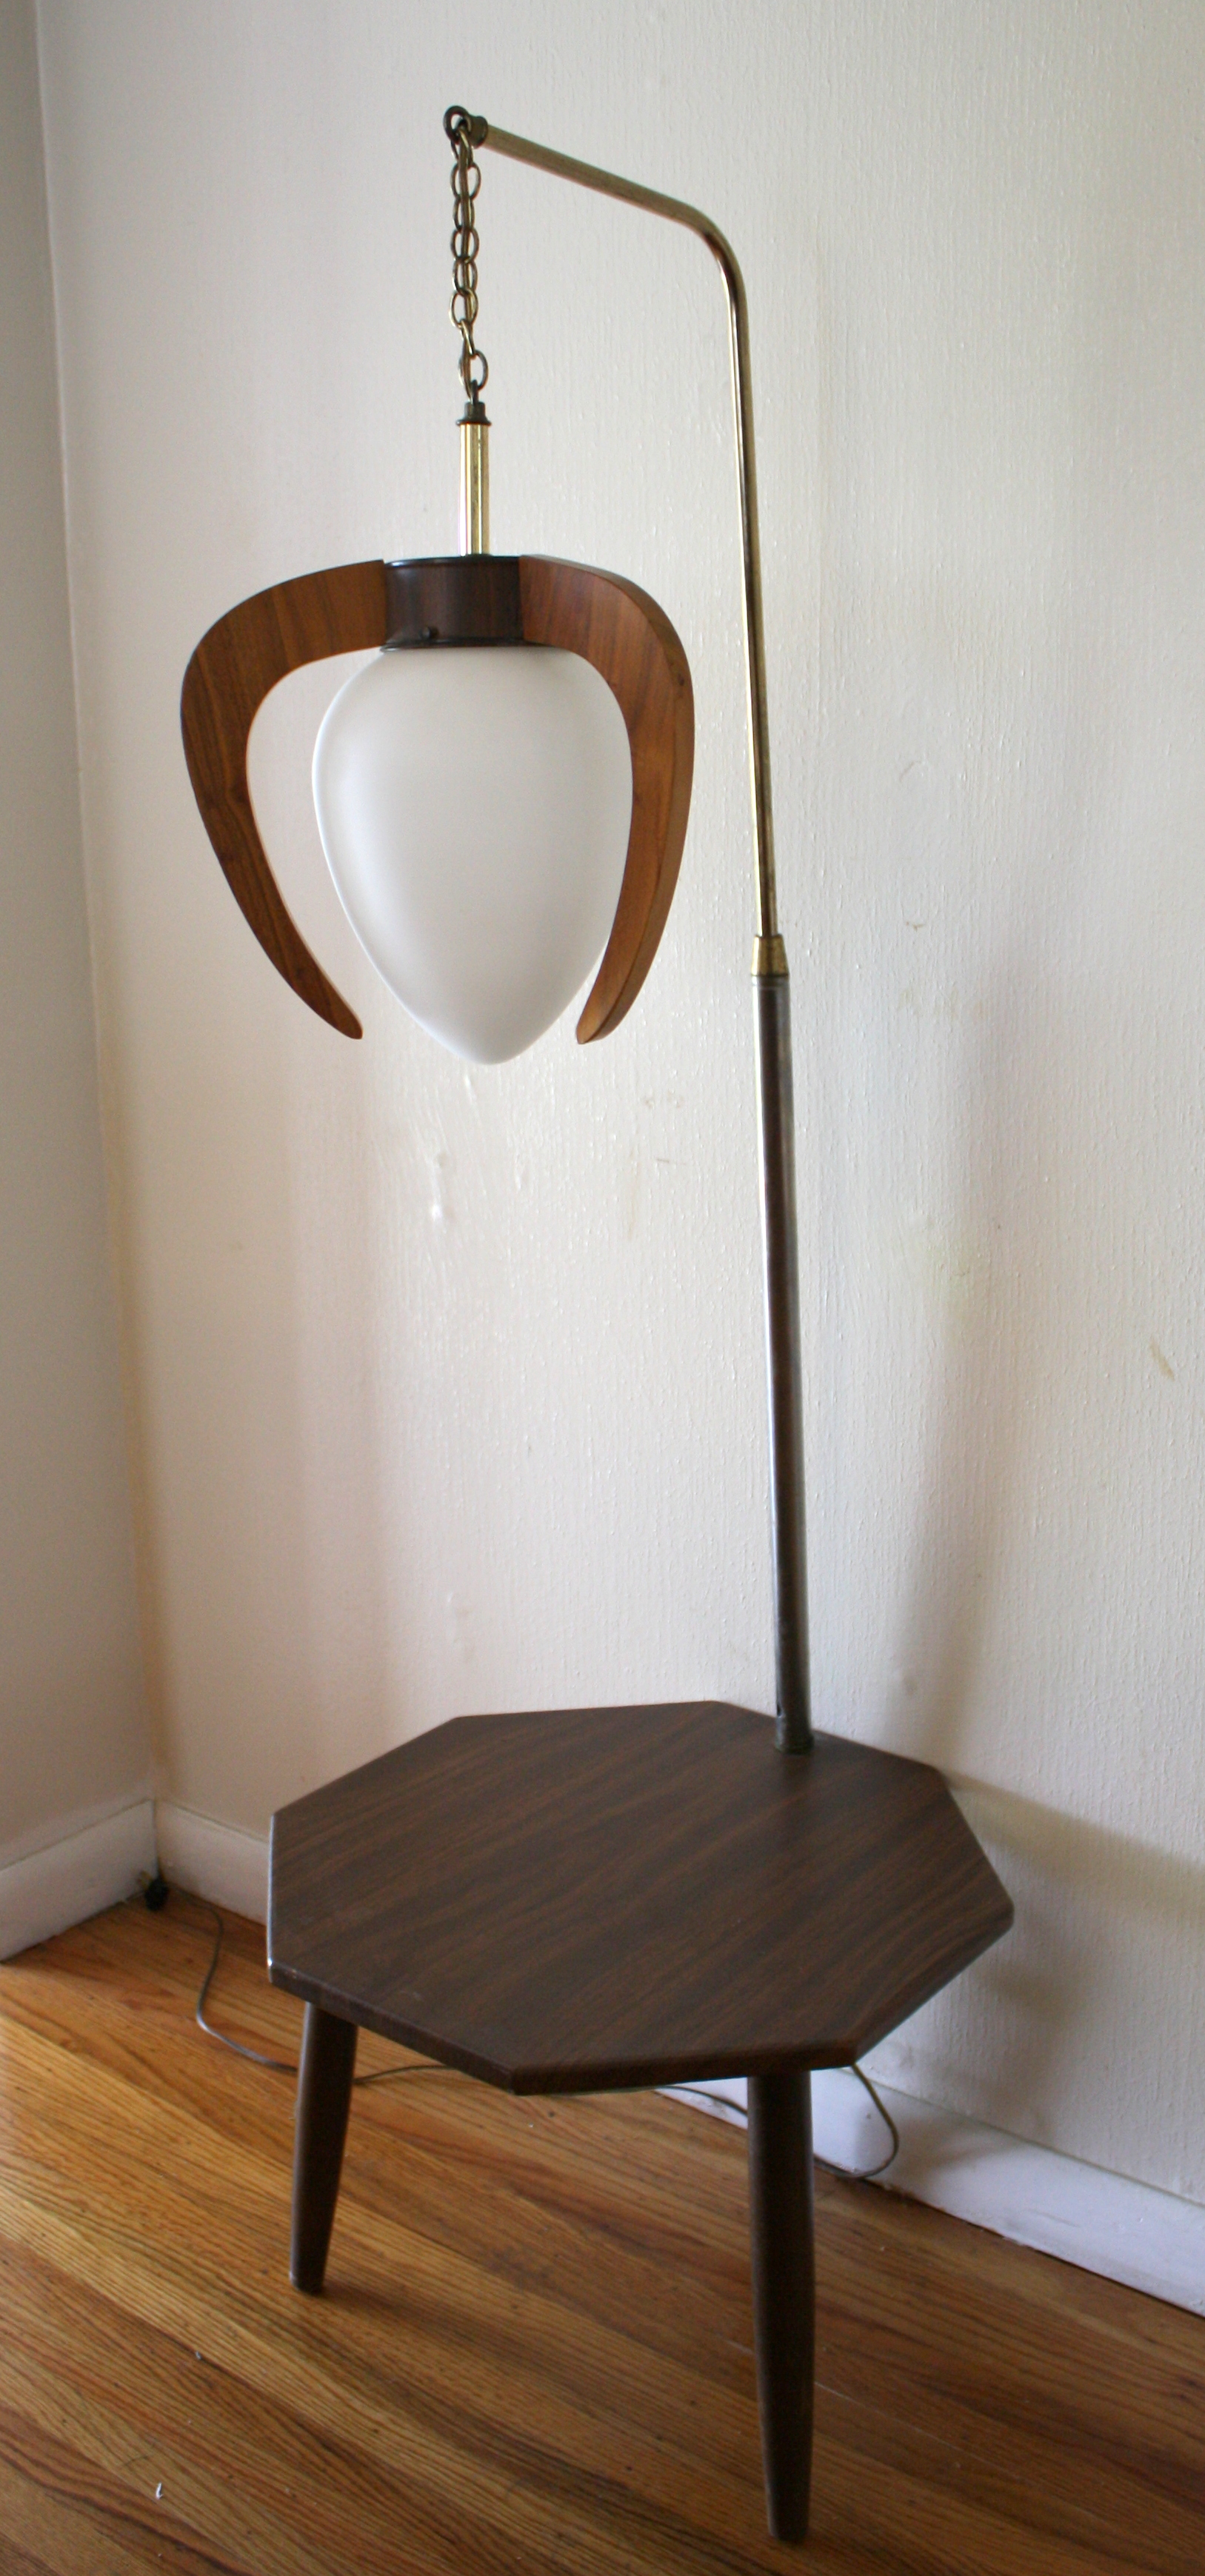 Mid Century Modern Pendant Lamp Table Combination Picked  : pendant light 1 from pickedvintage.com size 1627 x 3478 jpeg 2313kB